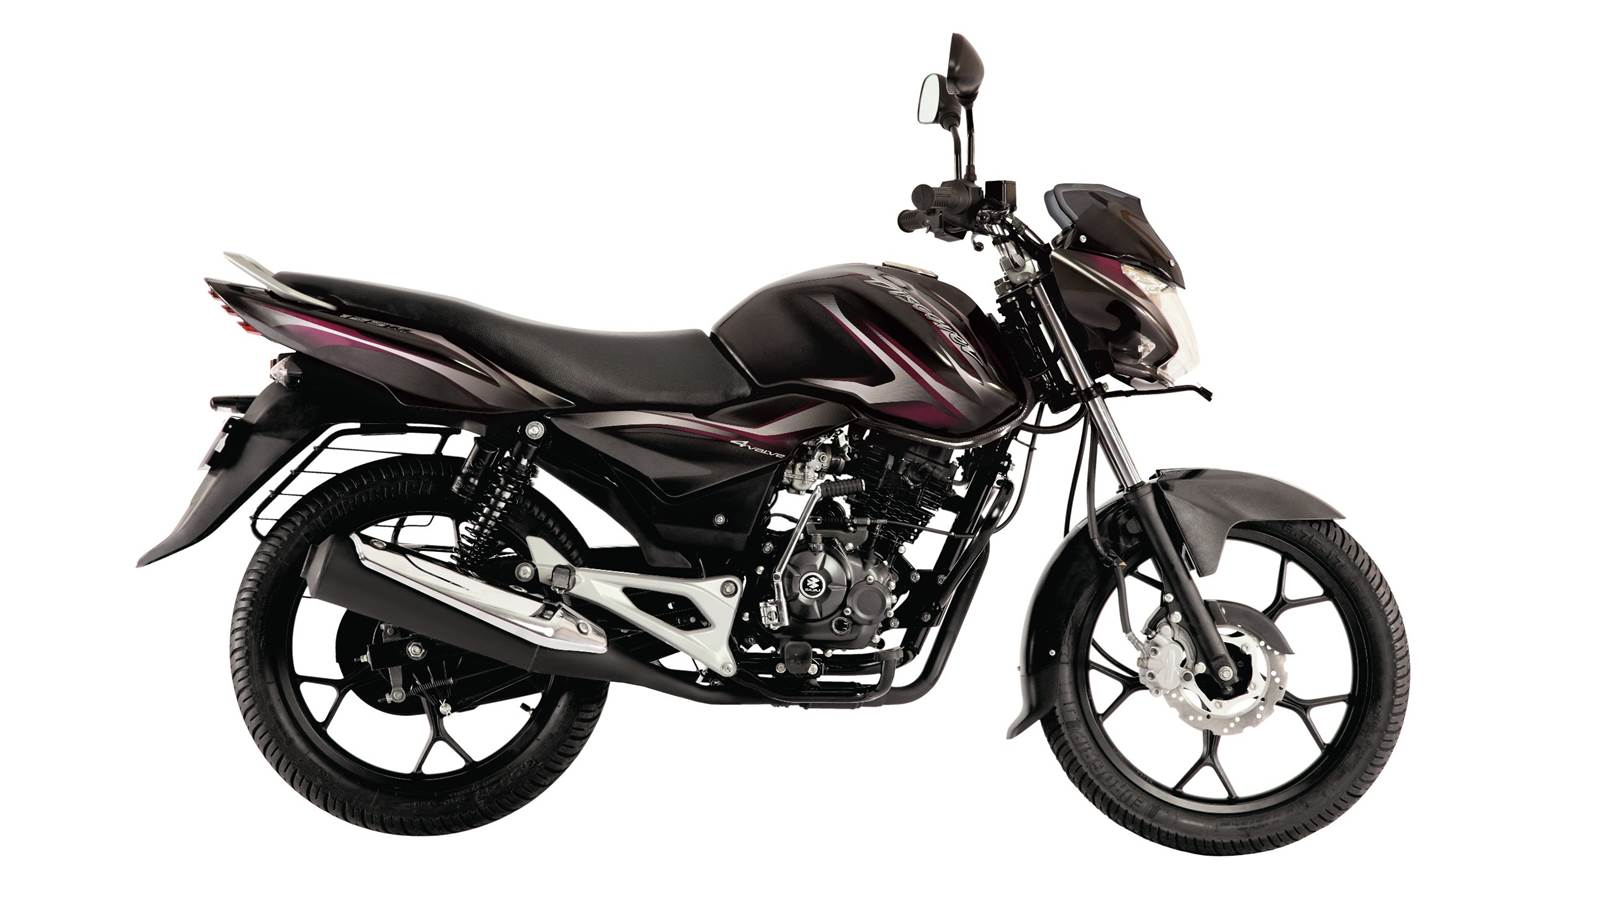 Bajaj discover 125 for sale in bangalore dating 8